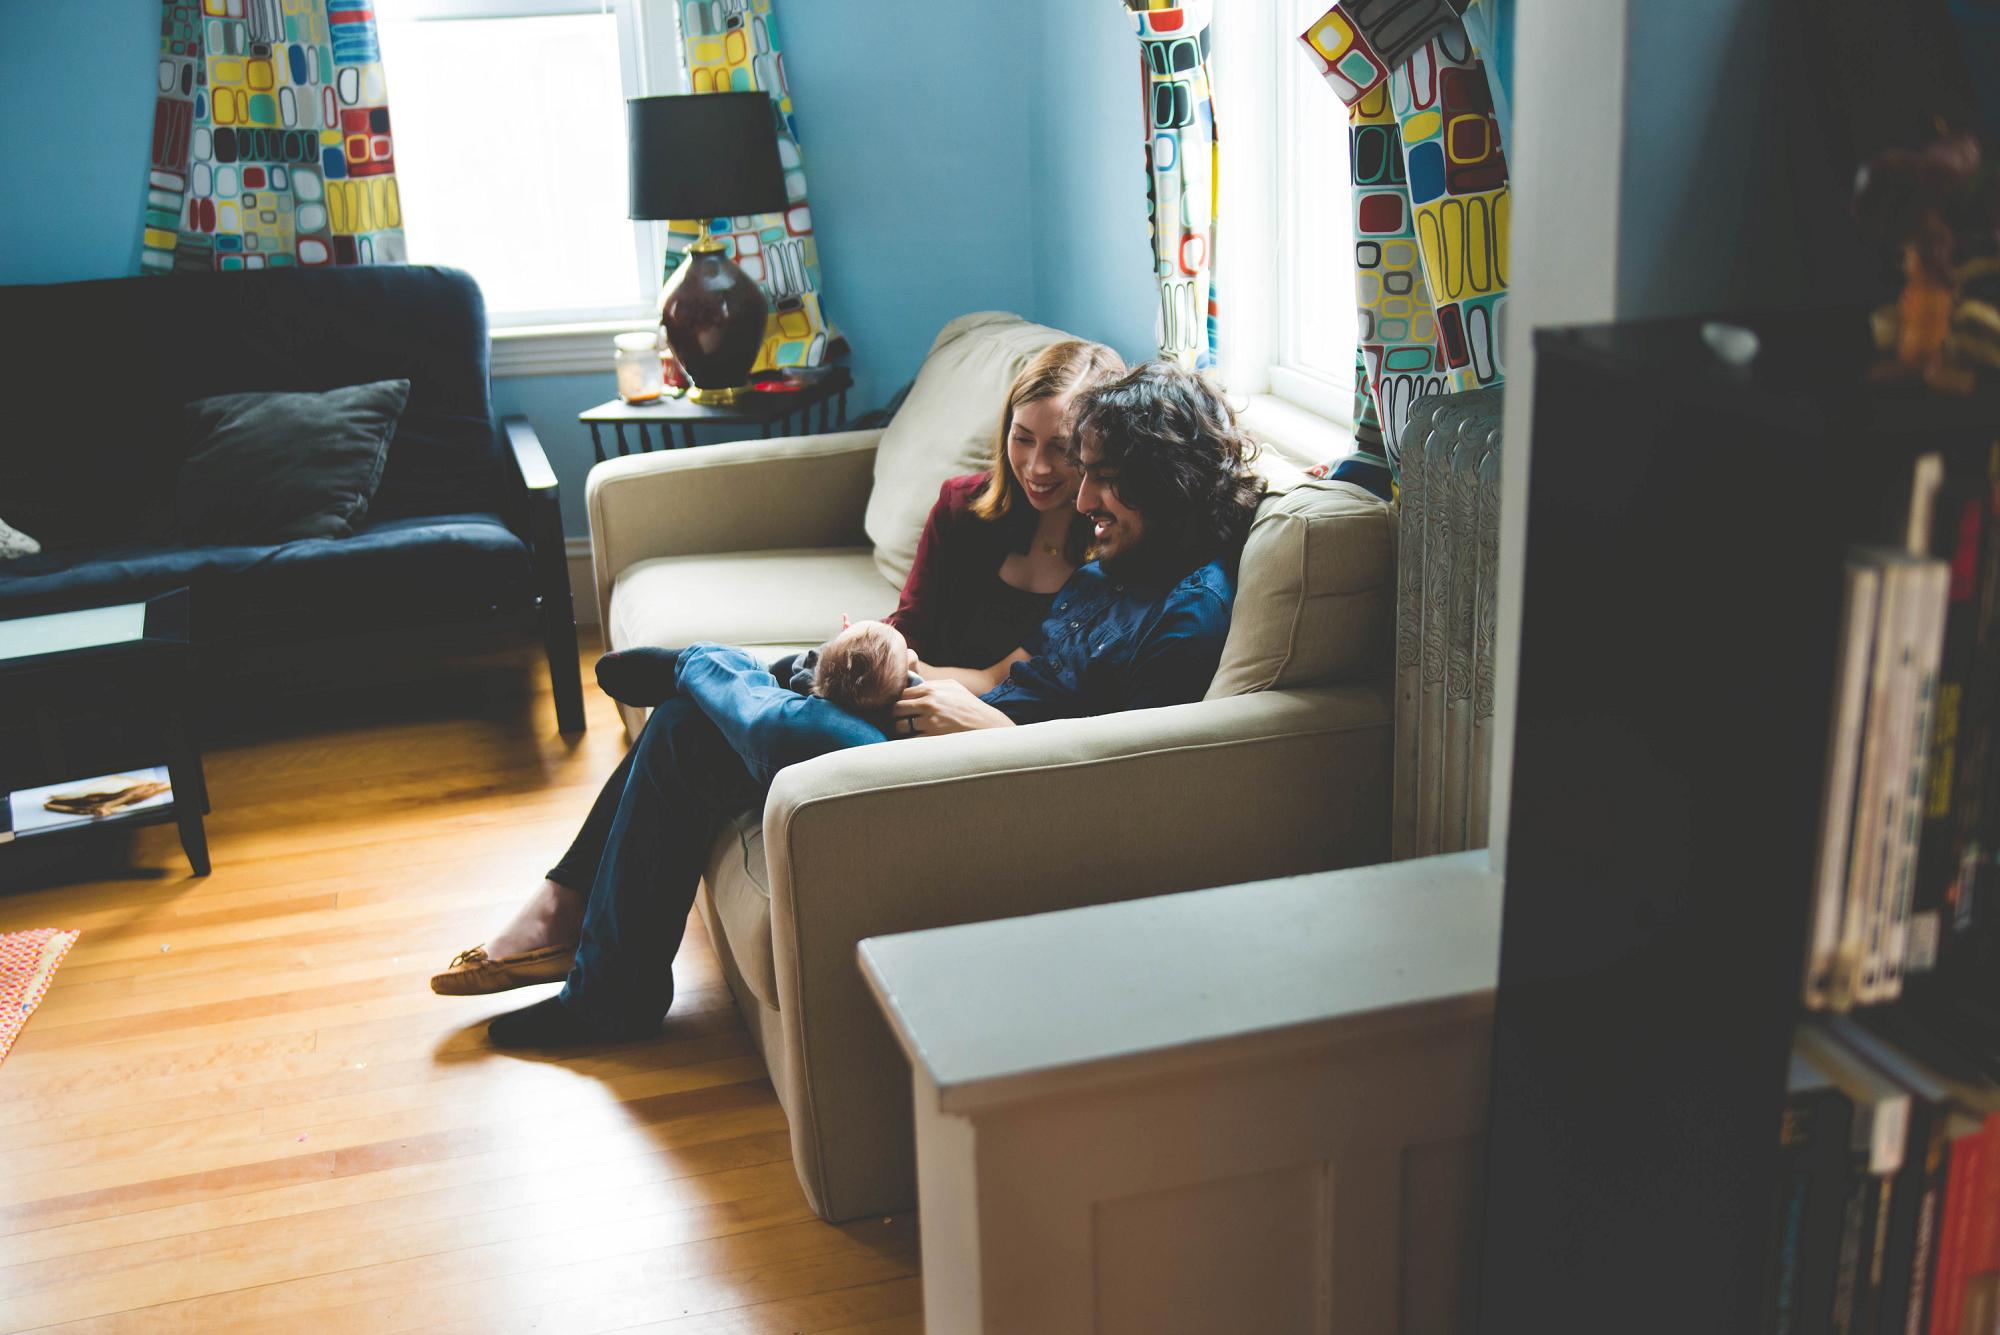 Parents with newborn on he couch in living room lifestyle session